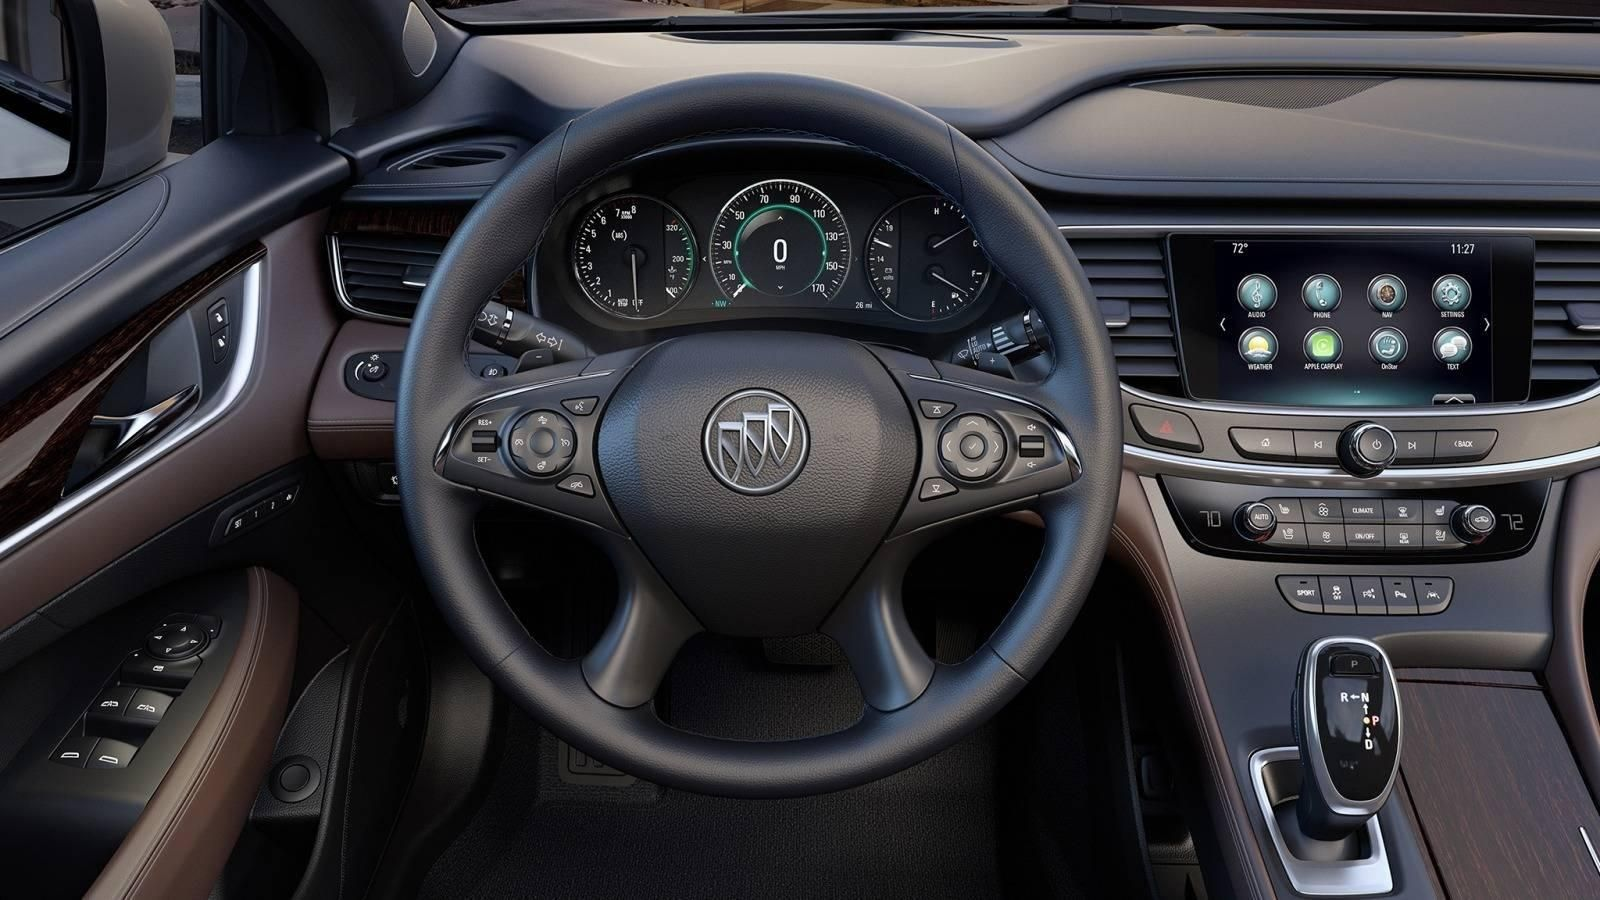 2017 Buick Lacrosse Review & Ratings Edmunds with regard